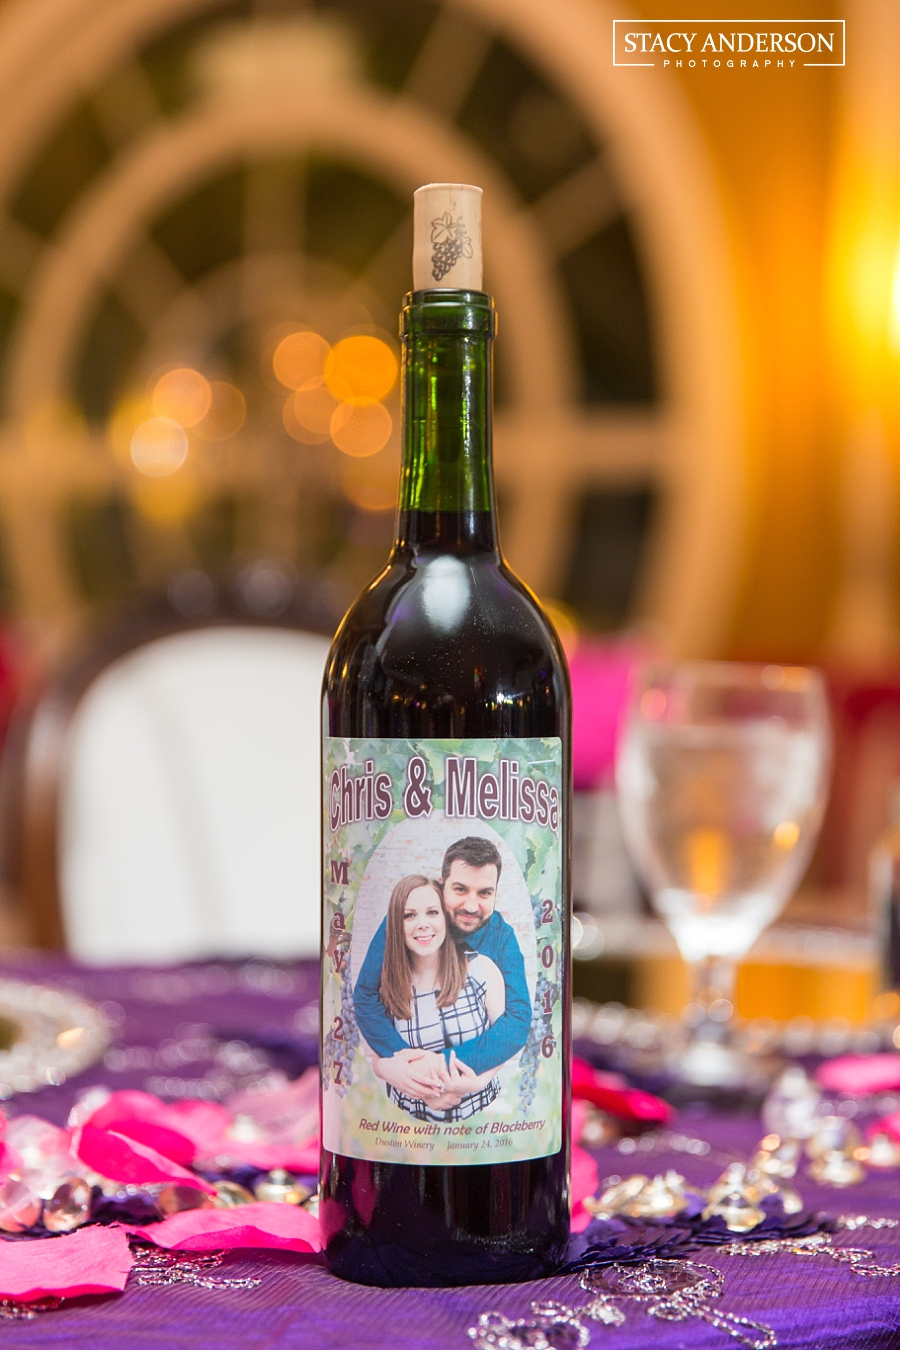 Custom wine and labels made by a family friend